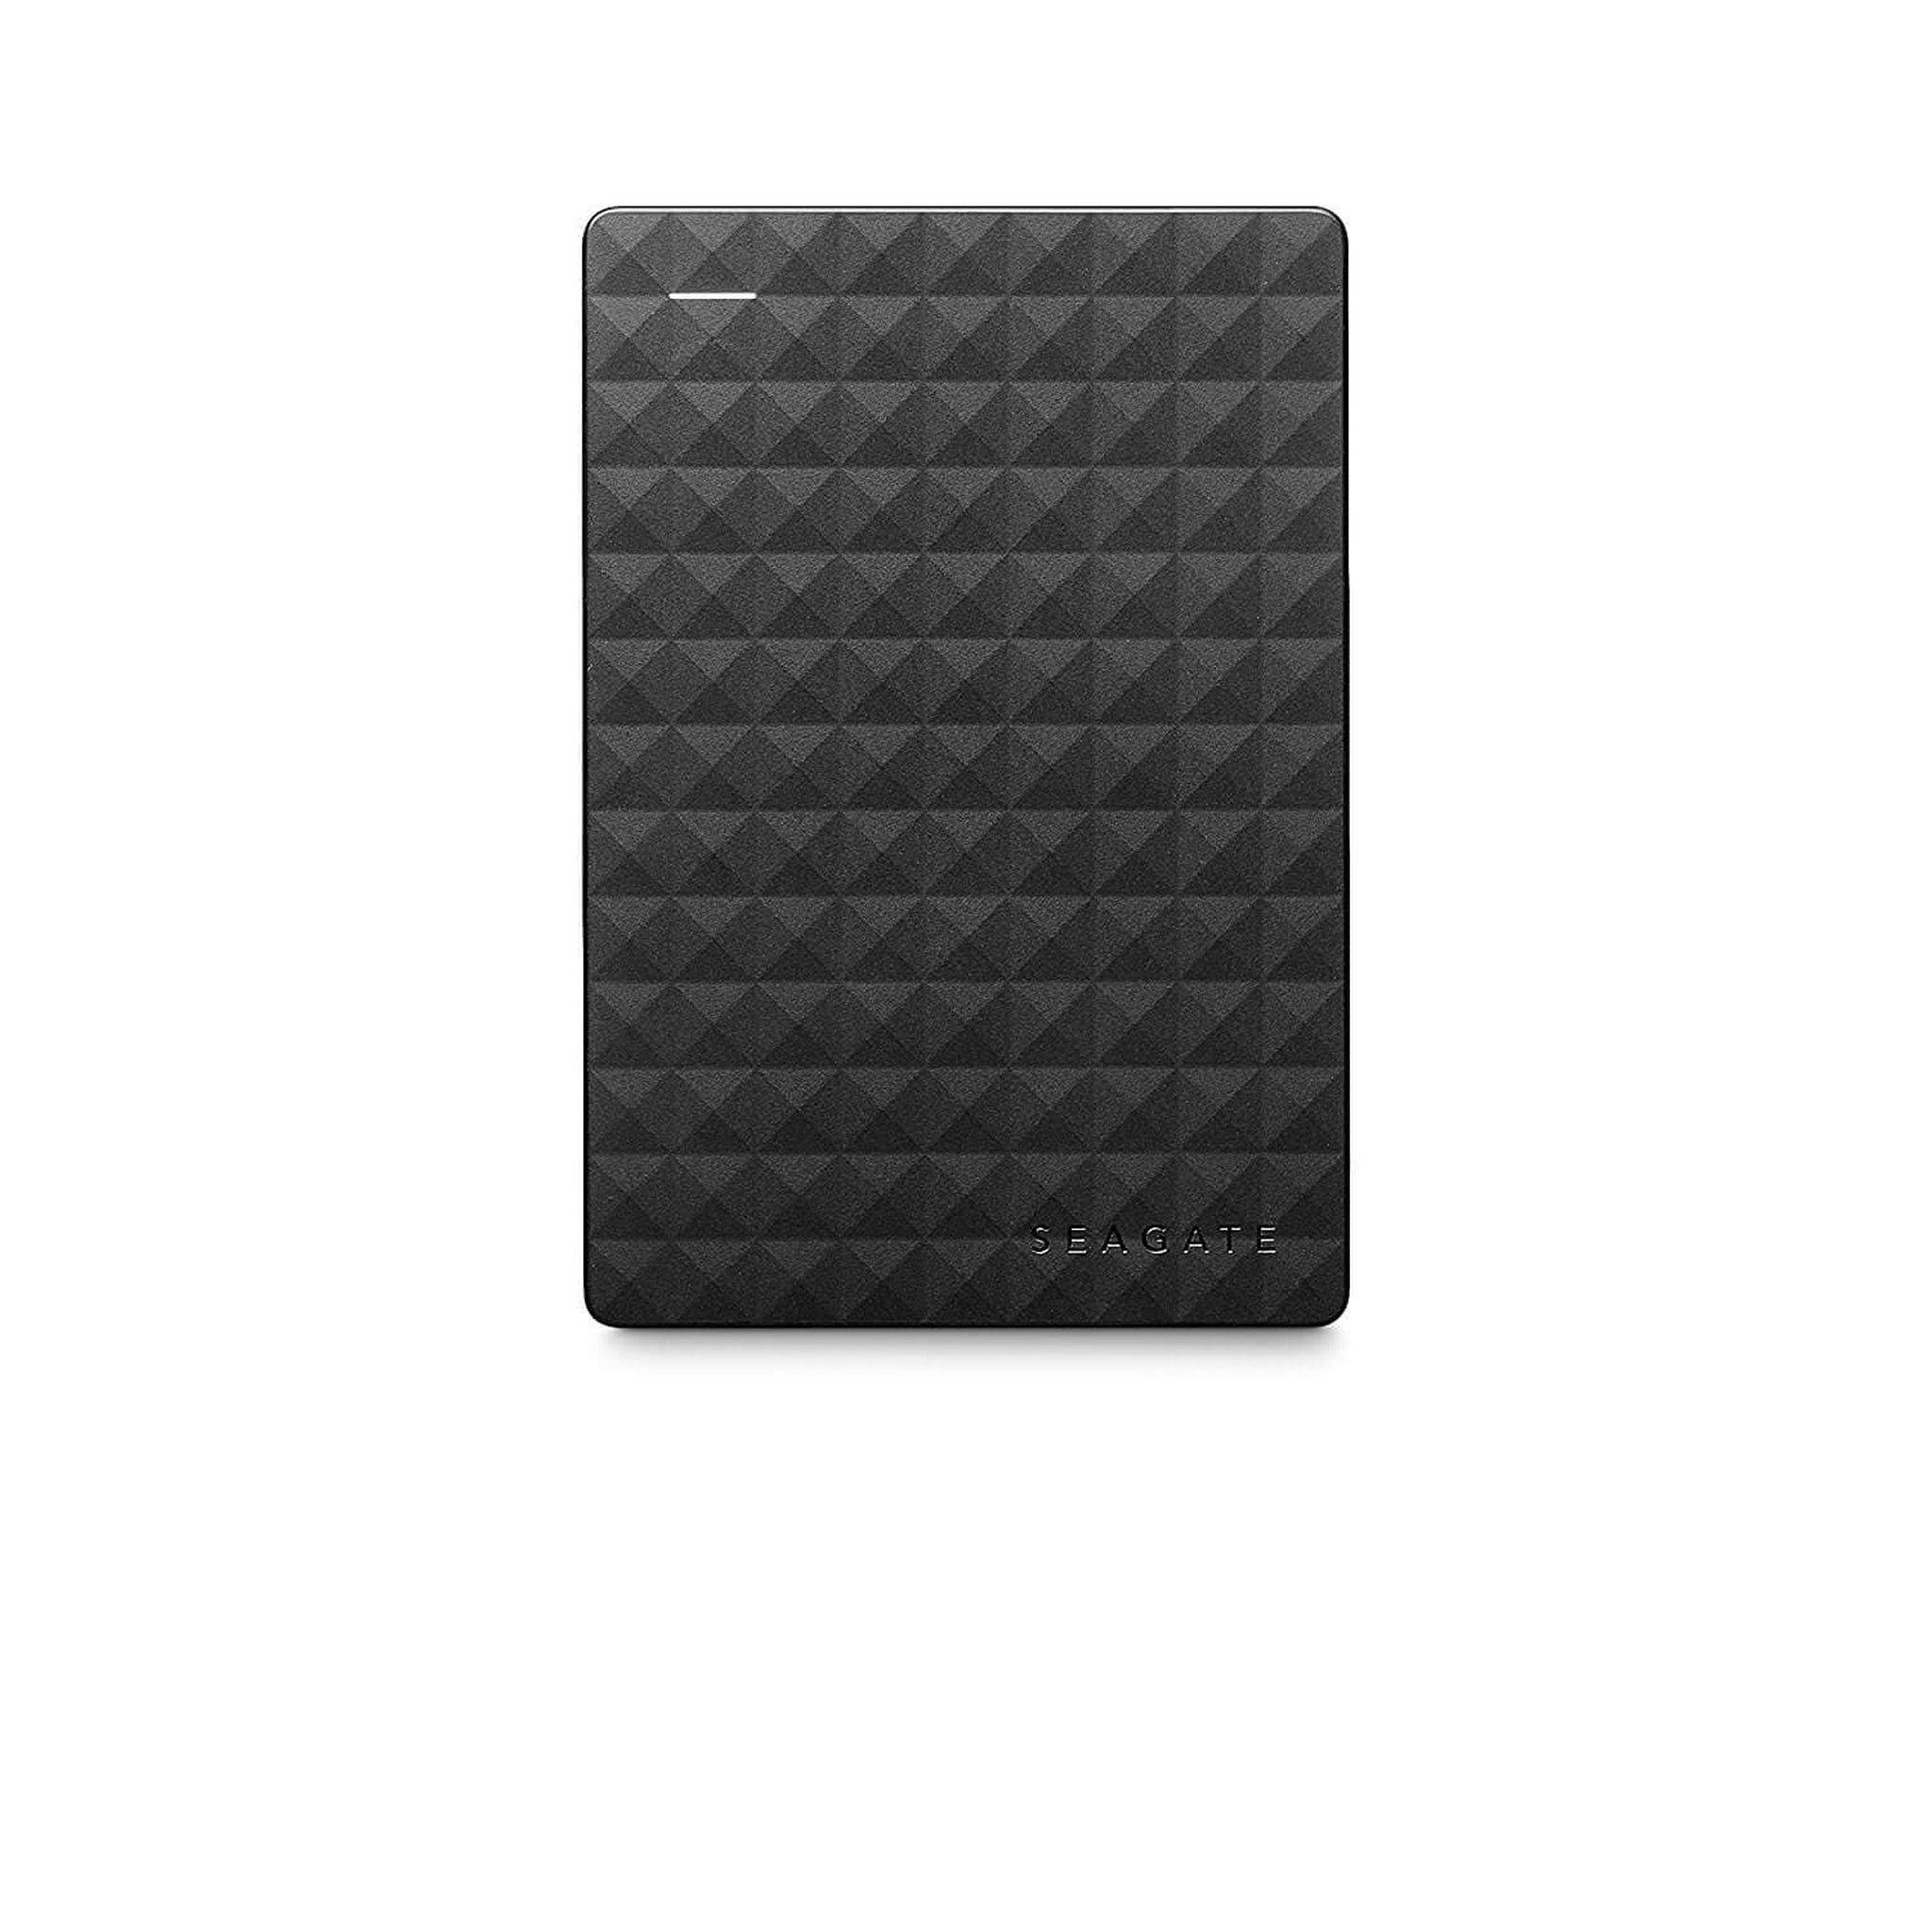 Seagate Expansion Portable 1.5TB External Hard Drive - Choice Computer Technologies